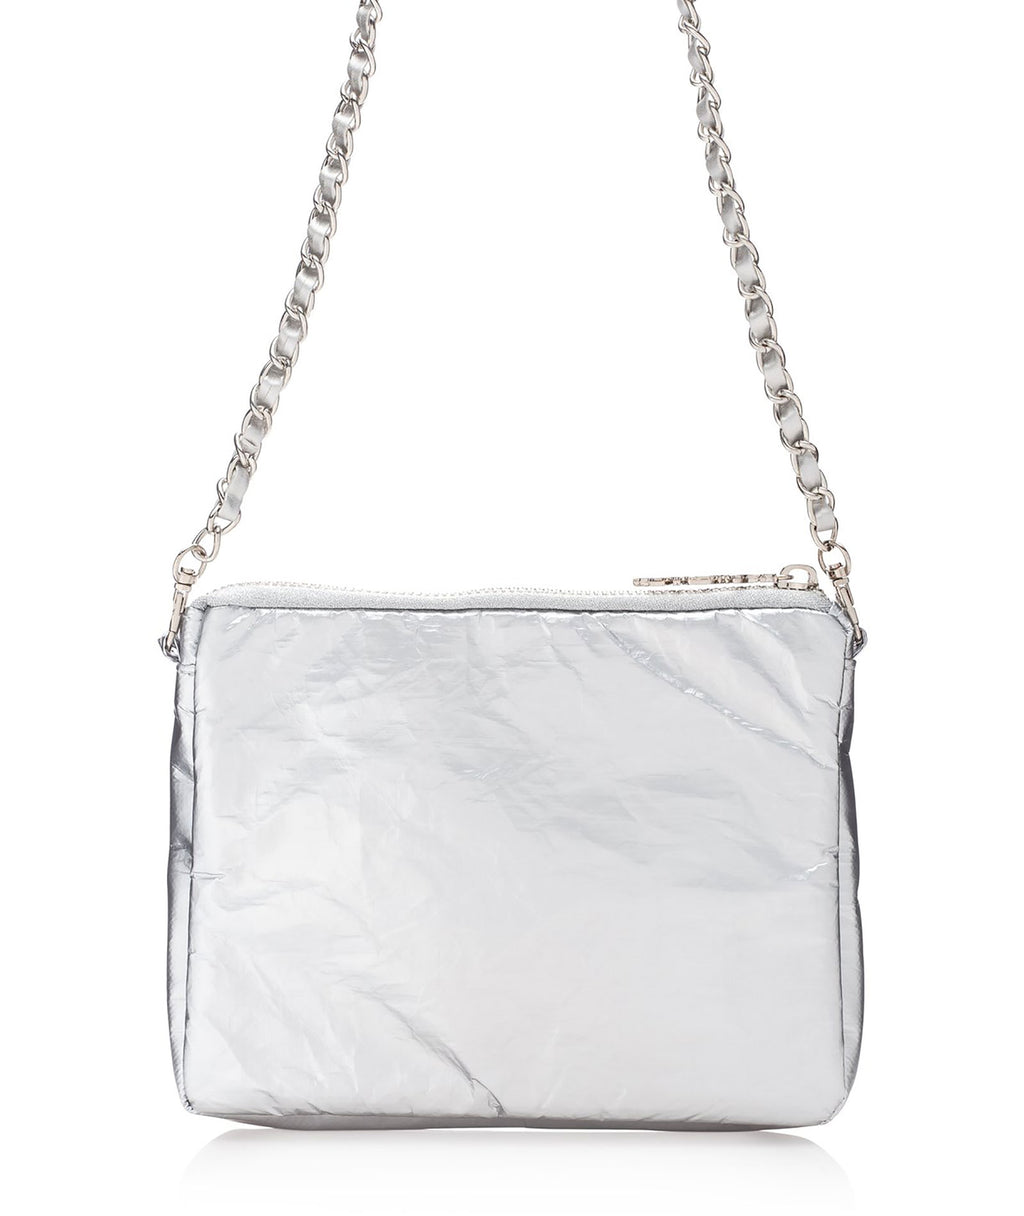 HI Love Travel Metallic Silver Purse